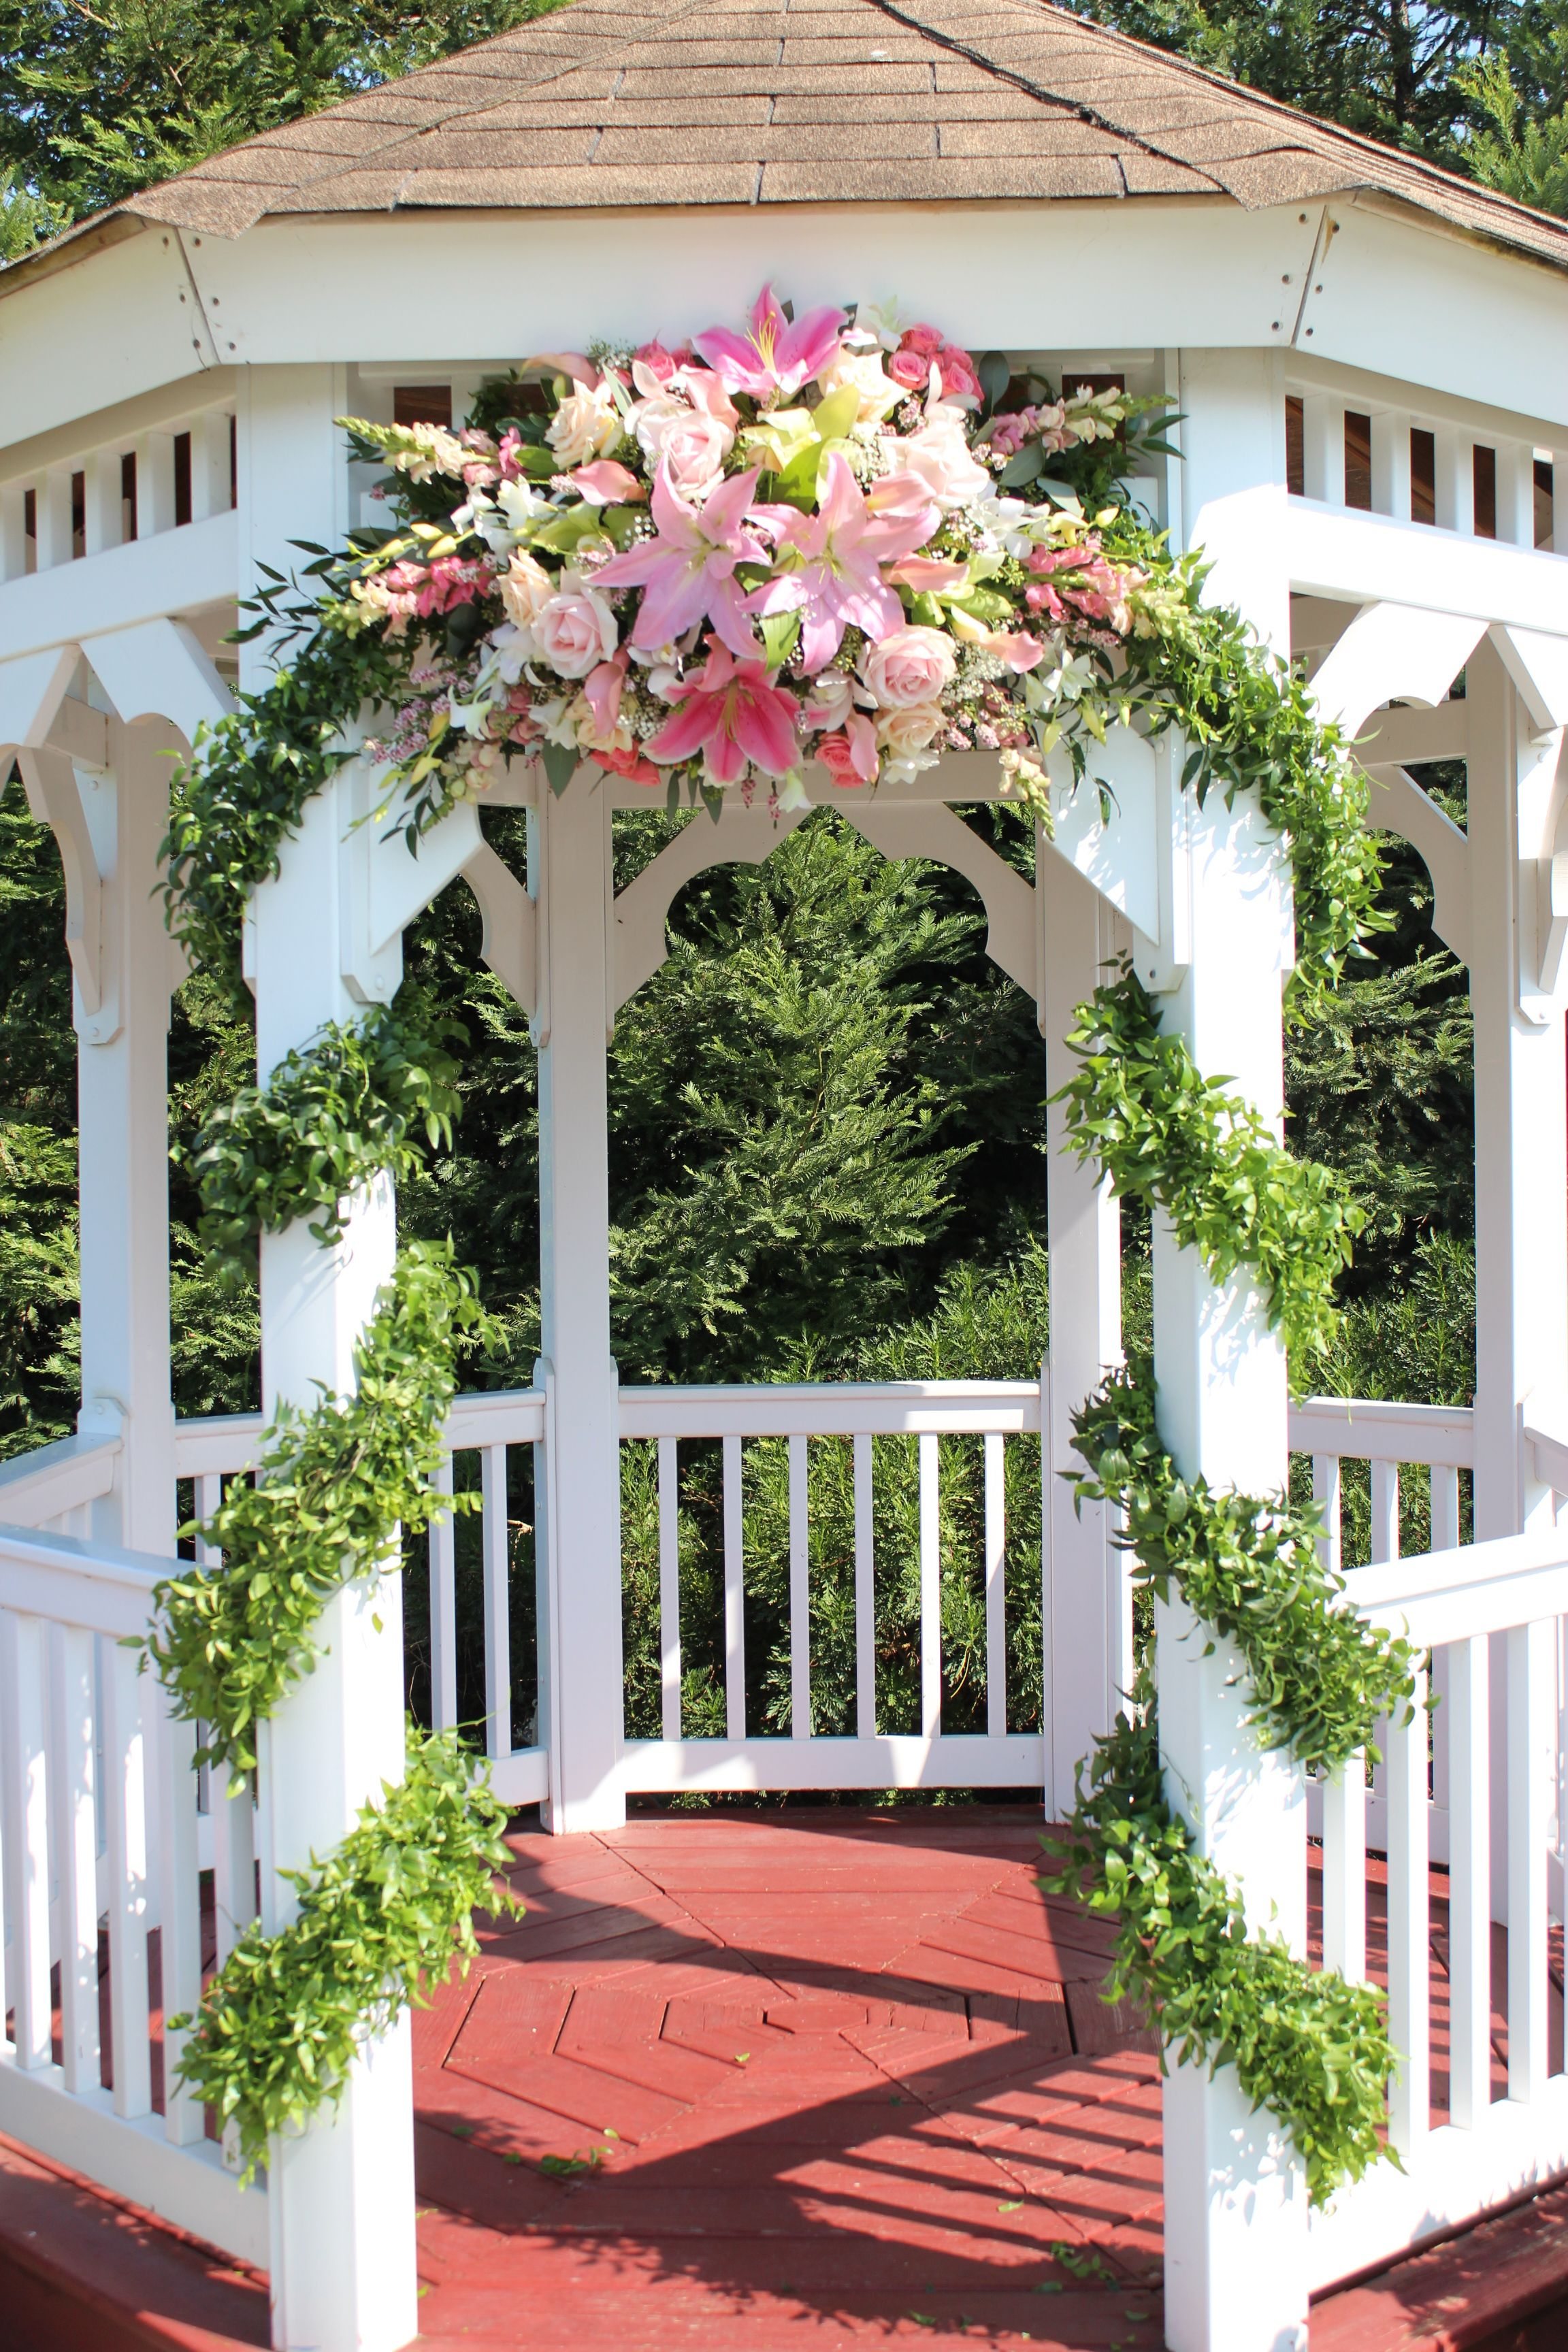 Pink Wedding Gazebo Flowers Gazebo Wedding Gazebo Wedding